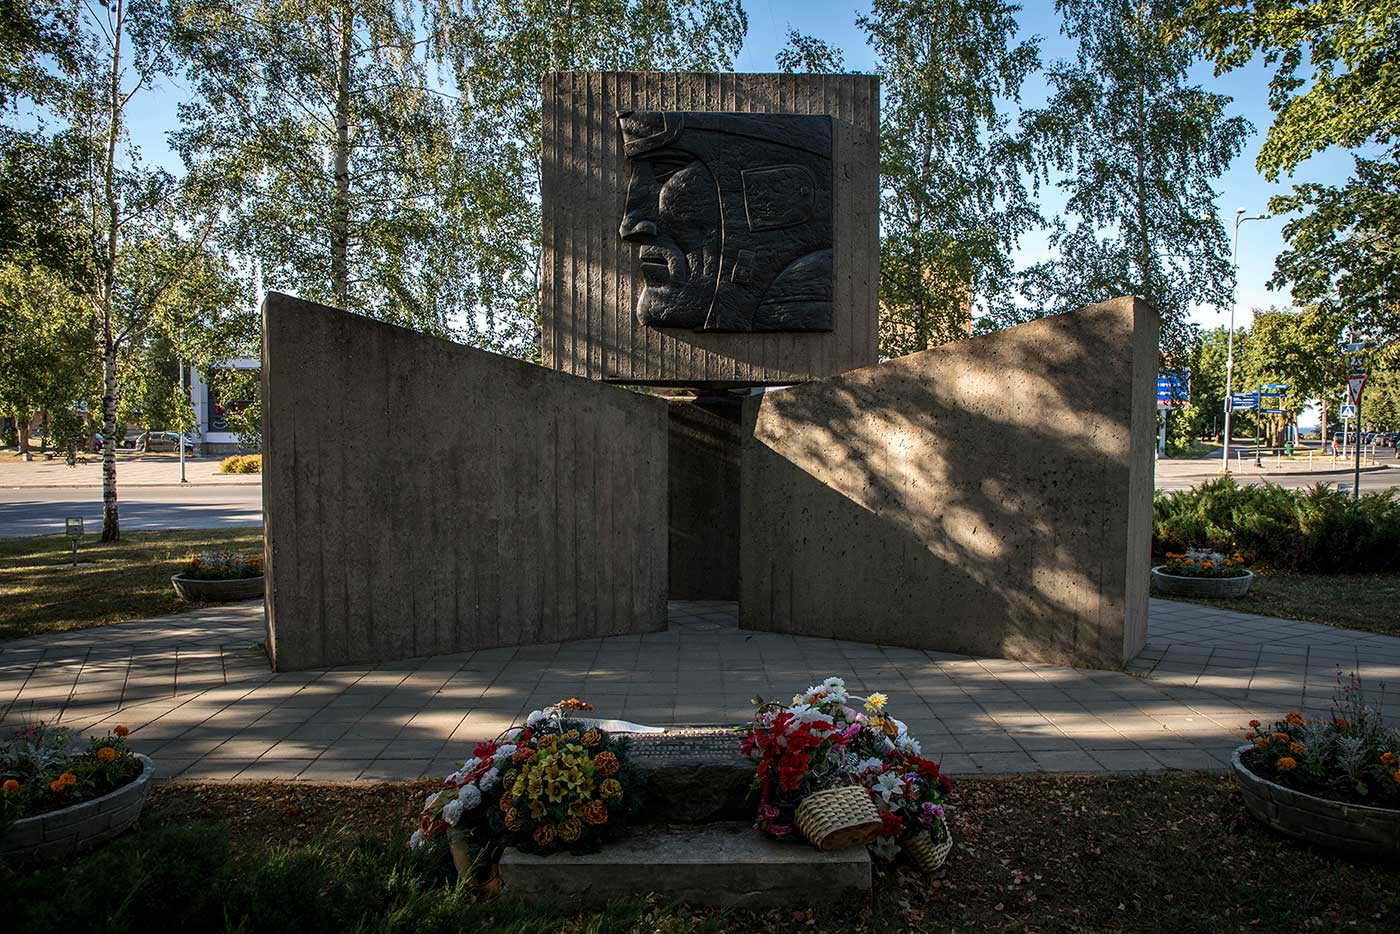 Fresh flowers decorate this Soviet memorial site.